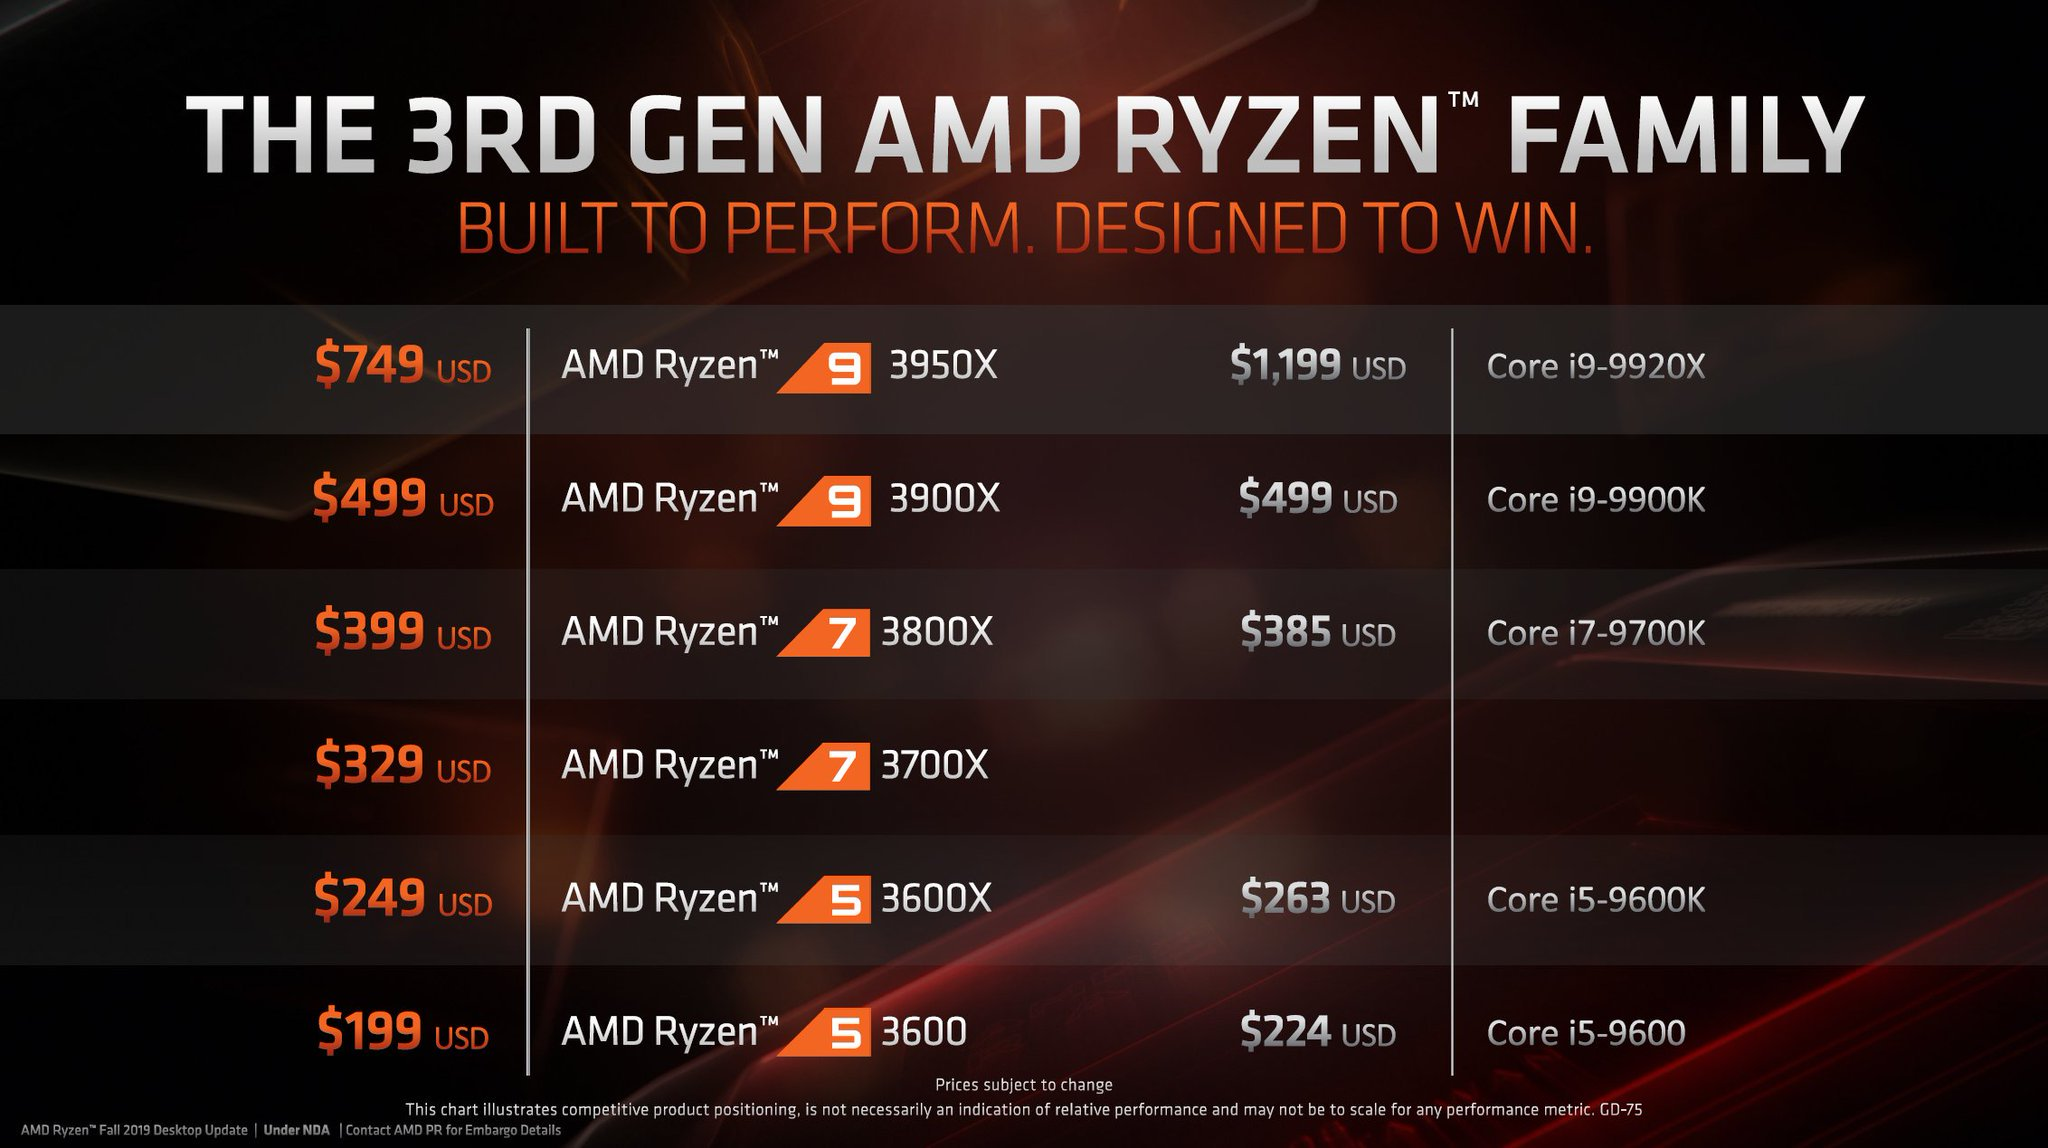 Mickey: Ryzen 9 3950X confirmed for the 25th of November [IMG]